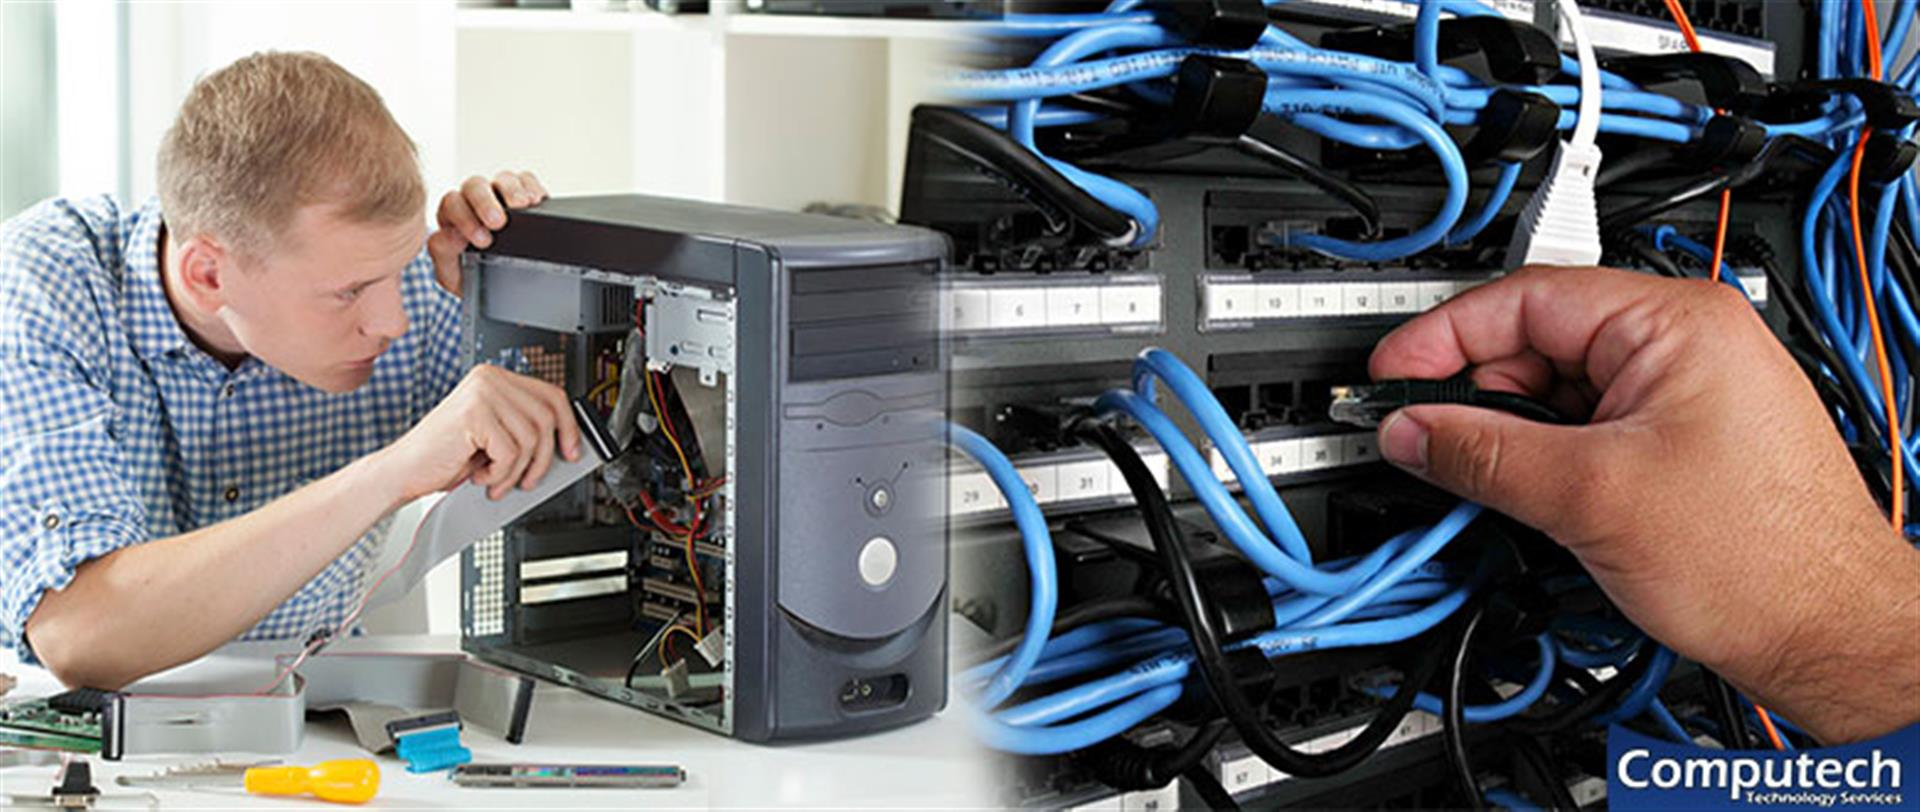 Hokes Bluff Alabama On Site Computer PC & Printer Repair, Networks, Telecom & Data Wiring Solutions